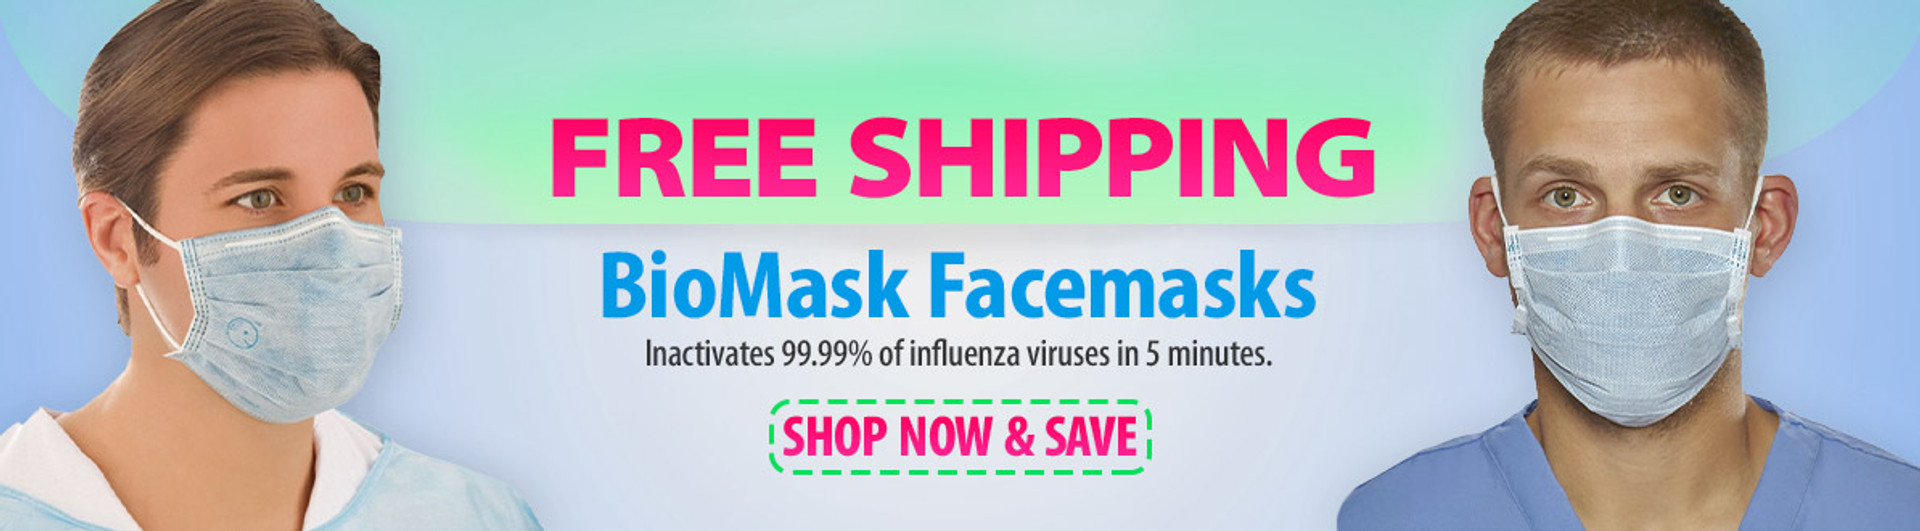 free shipping on biomask